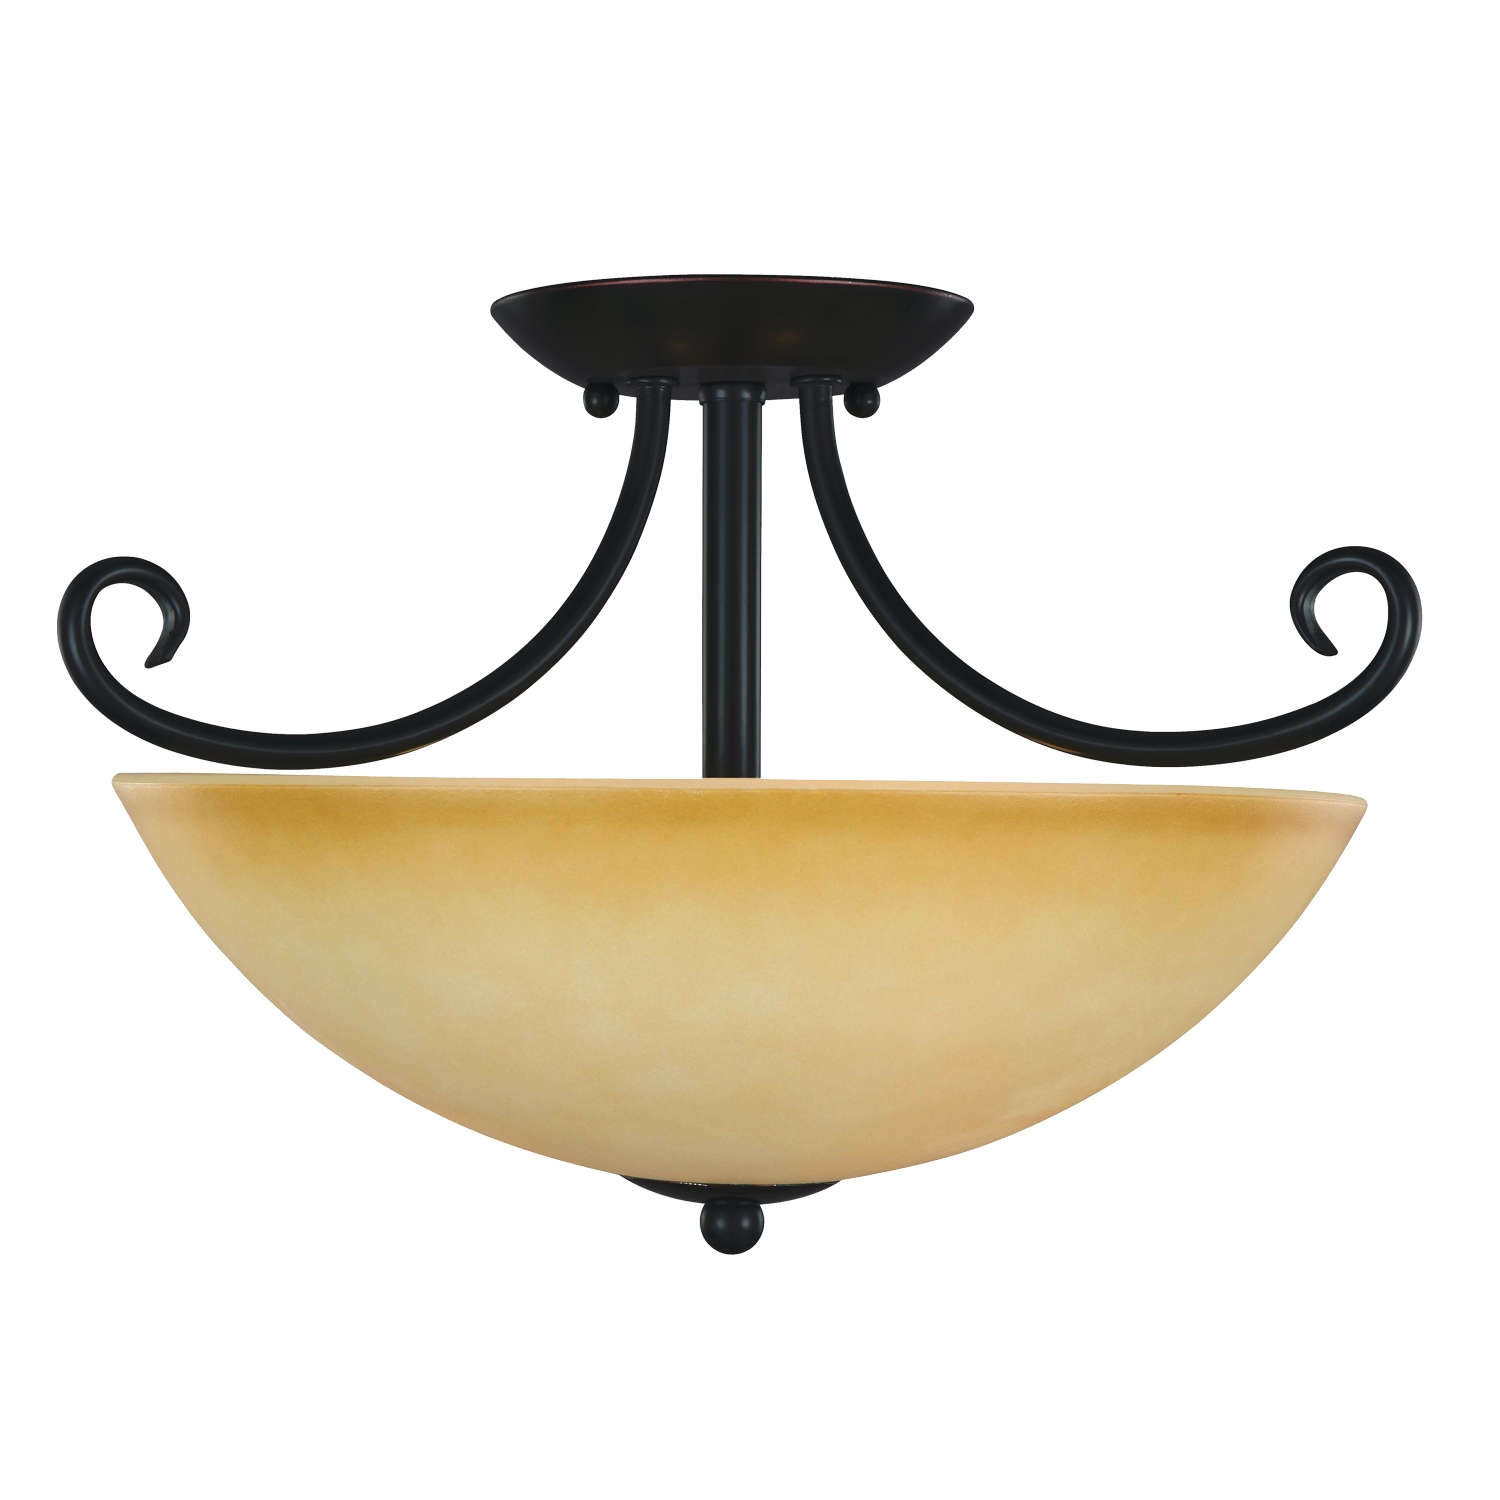 Oil Rubbed Bronze 3 Bulb Bathroom Light Wall Sconce 163835 Ebay Regarding Chandelier Bathroom Ceiling Lights (Image 23 of 25)